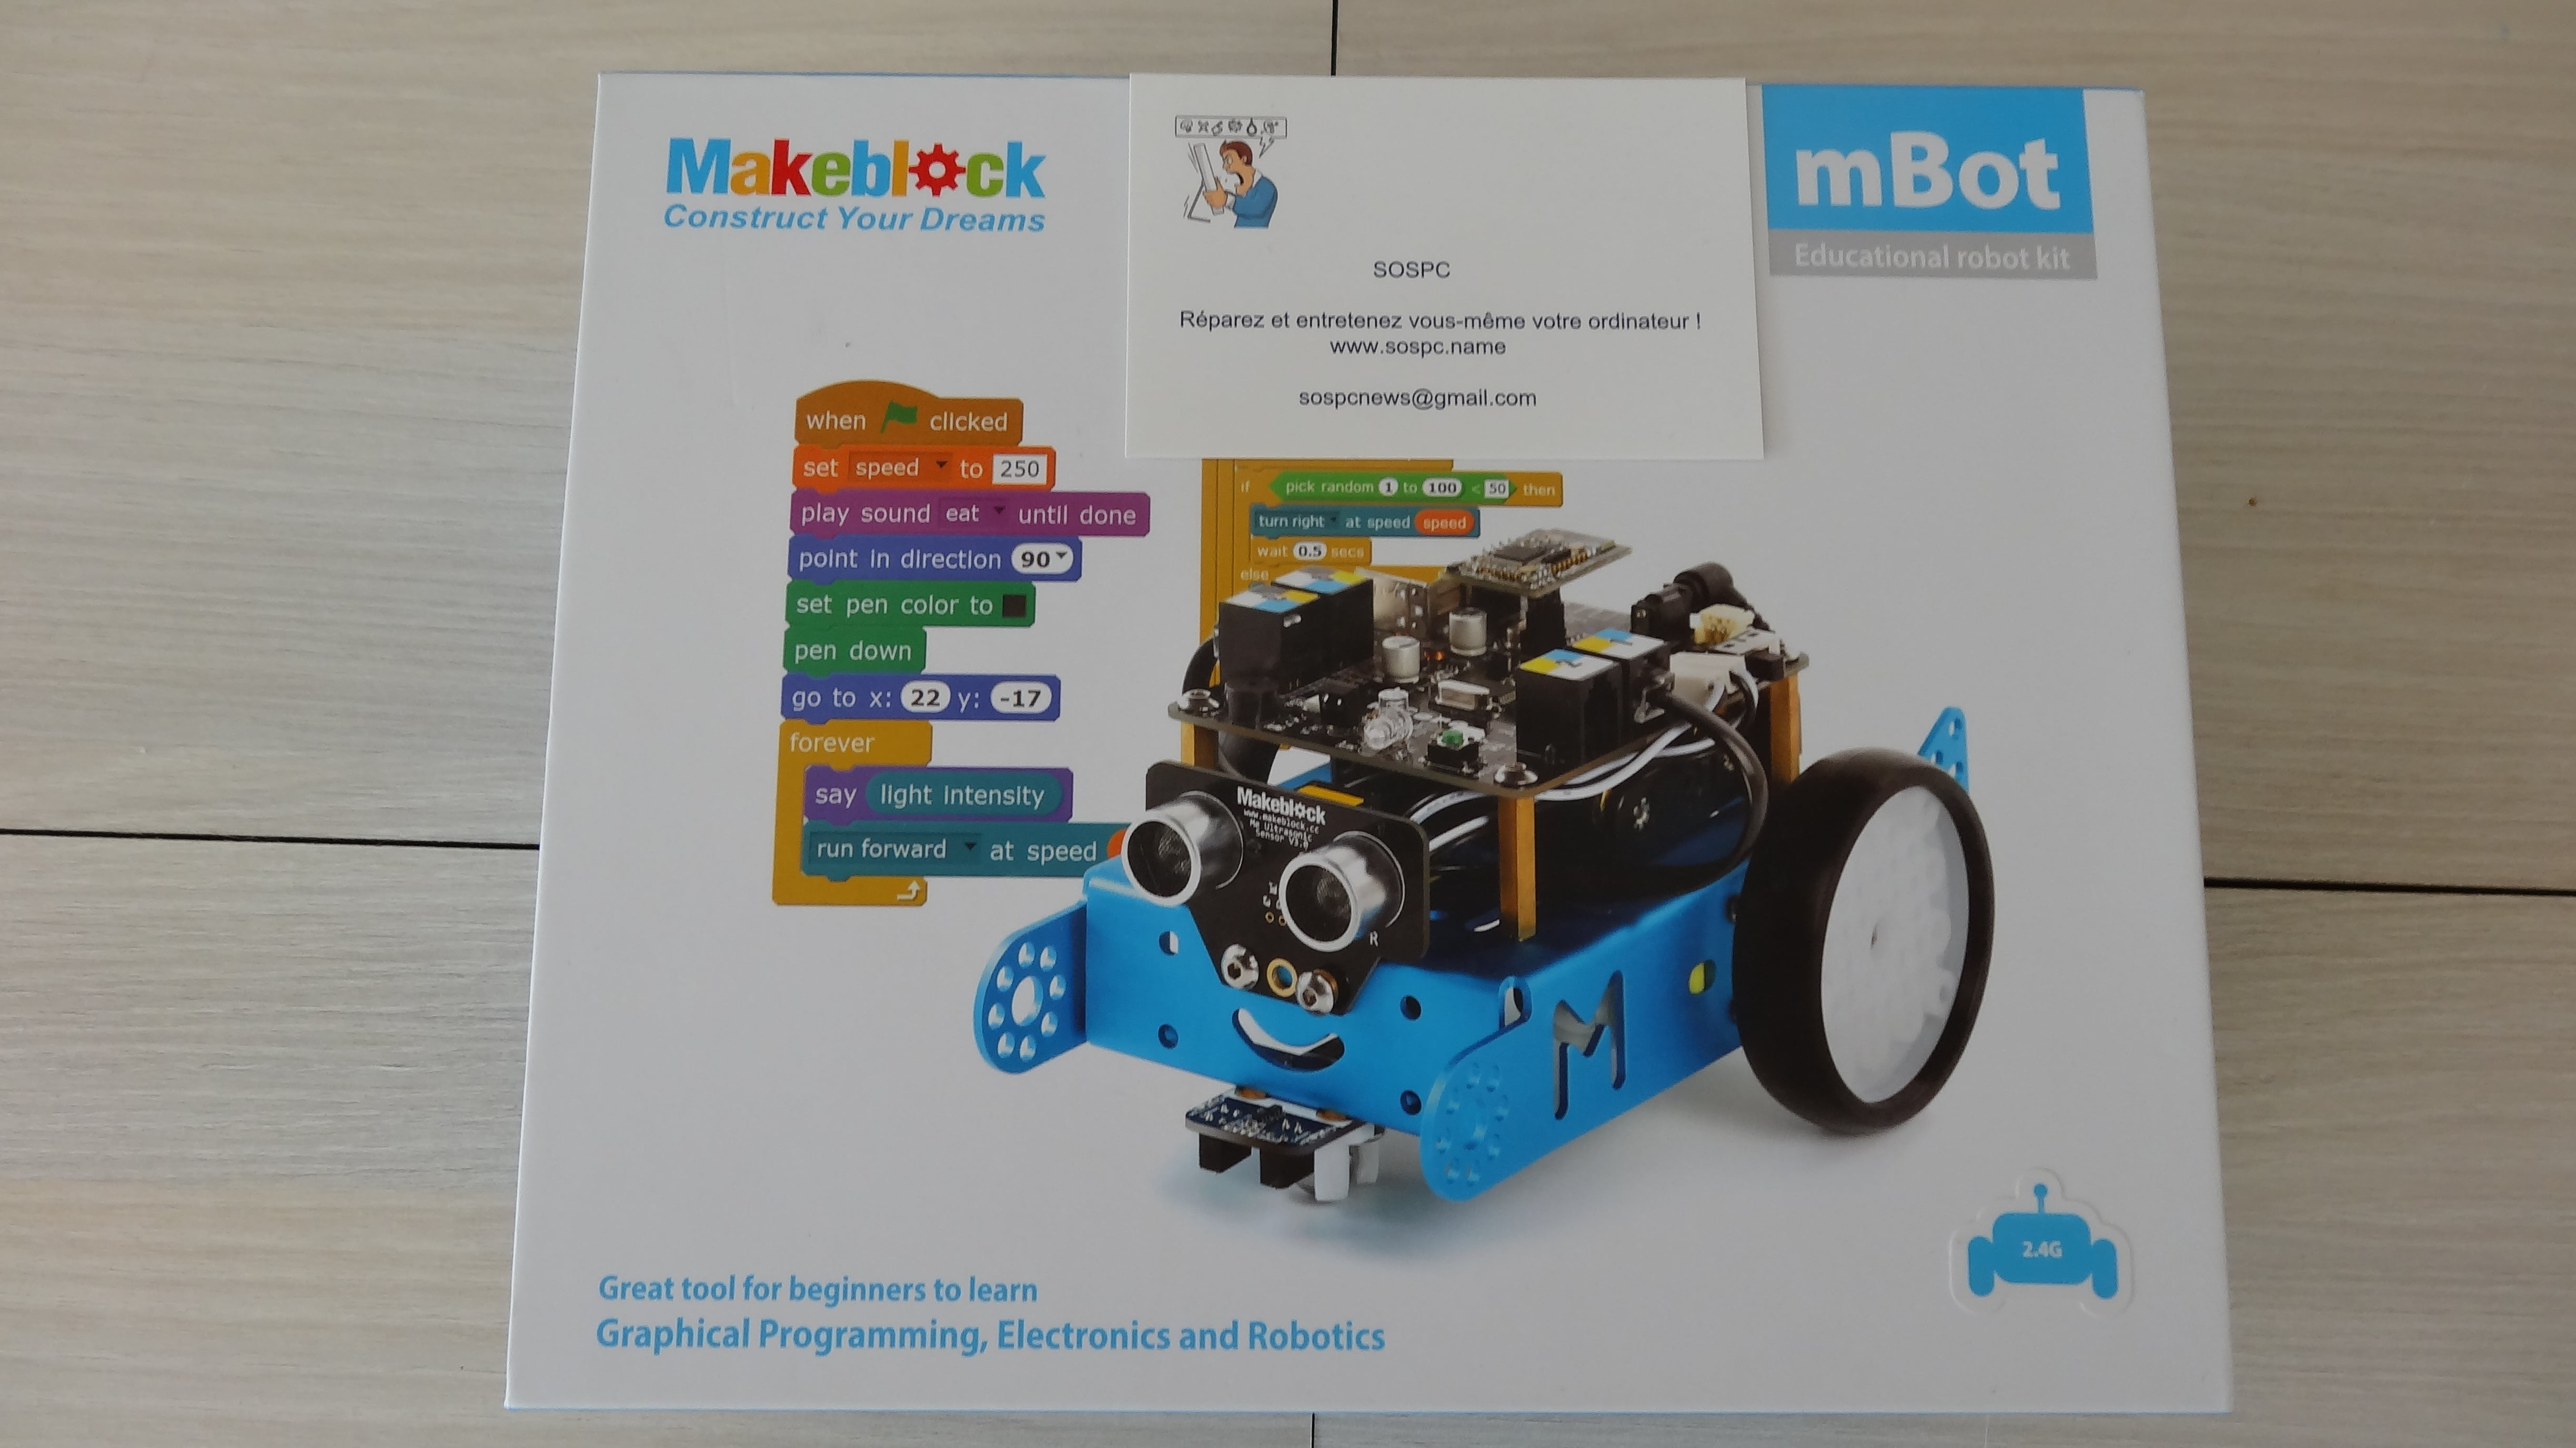 mbot-blue-un-robot-educatif-et-programmable-en-version-2-4-g-tres-interessant-legaragedupc-fr-1